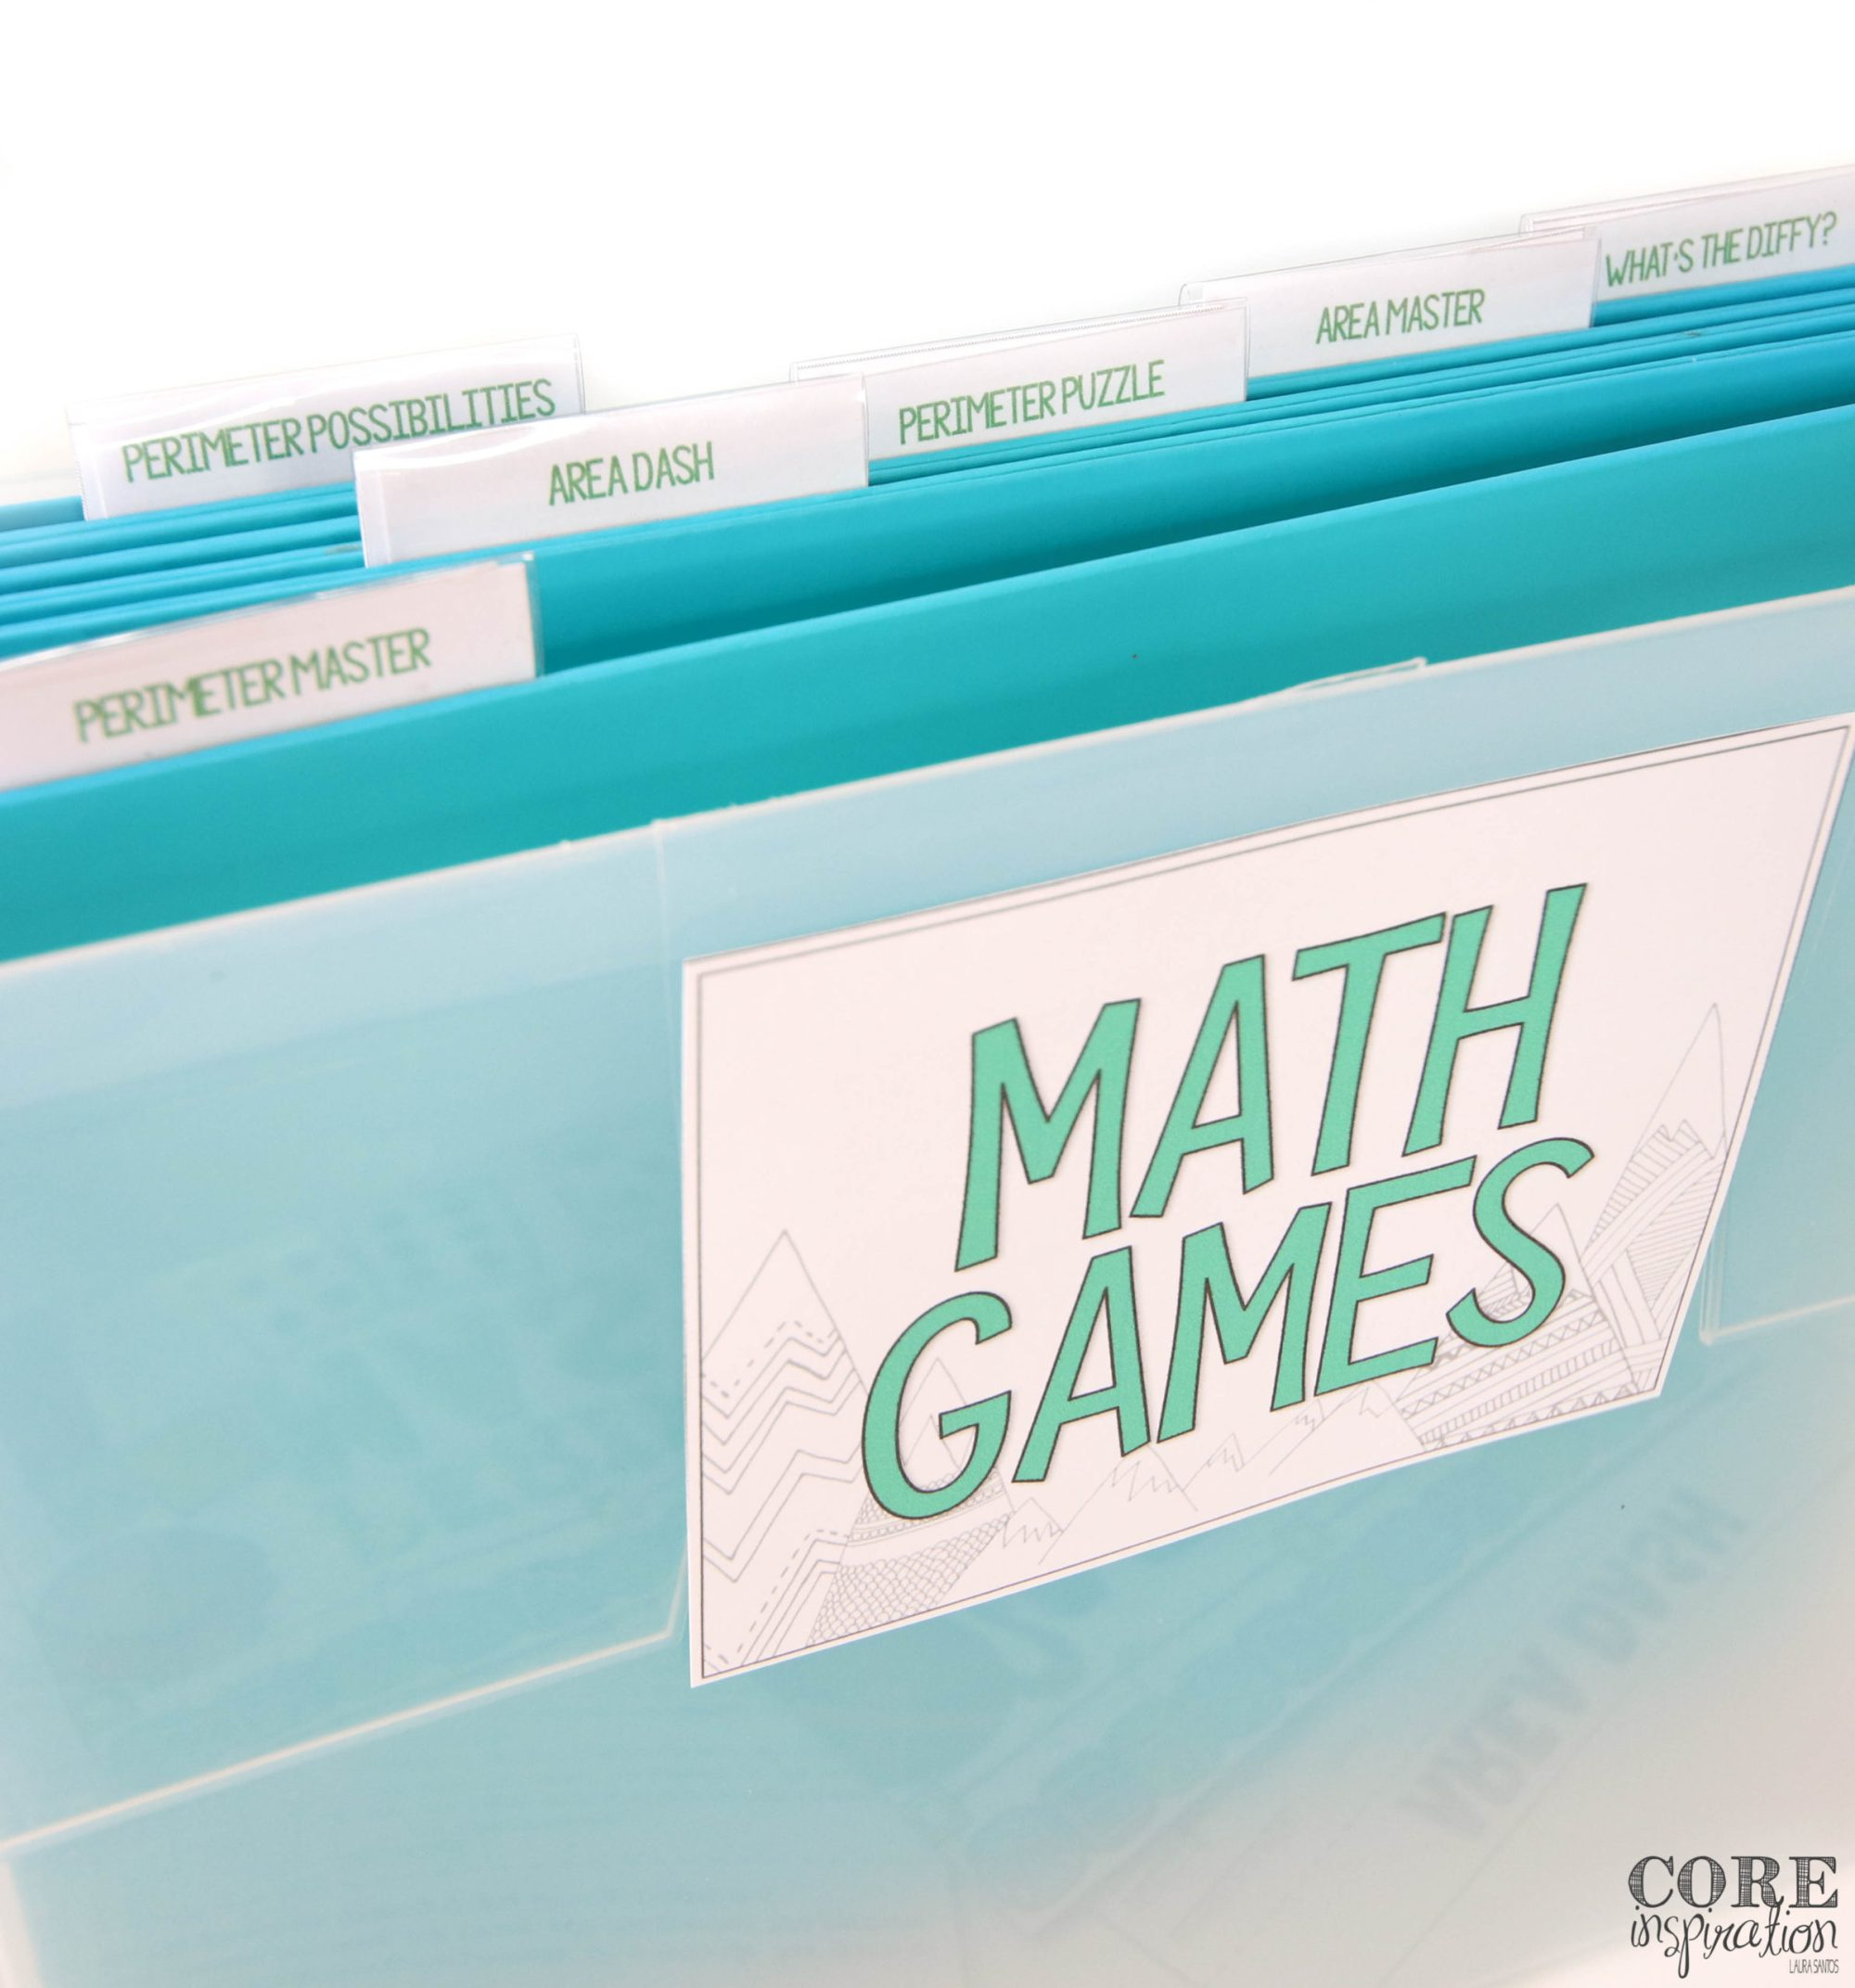 An aqua smaller file bin is a perfect place to store math games for one unit if you prefer not to store them in bins or binders. All the games for Core Inspiration's area and perimeter math game bundle are shown on labels in this photo.